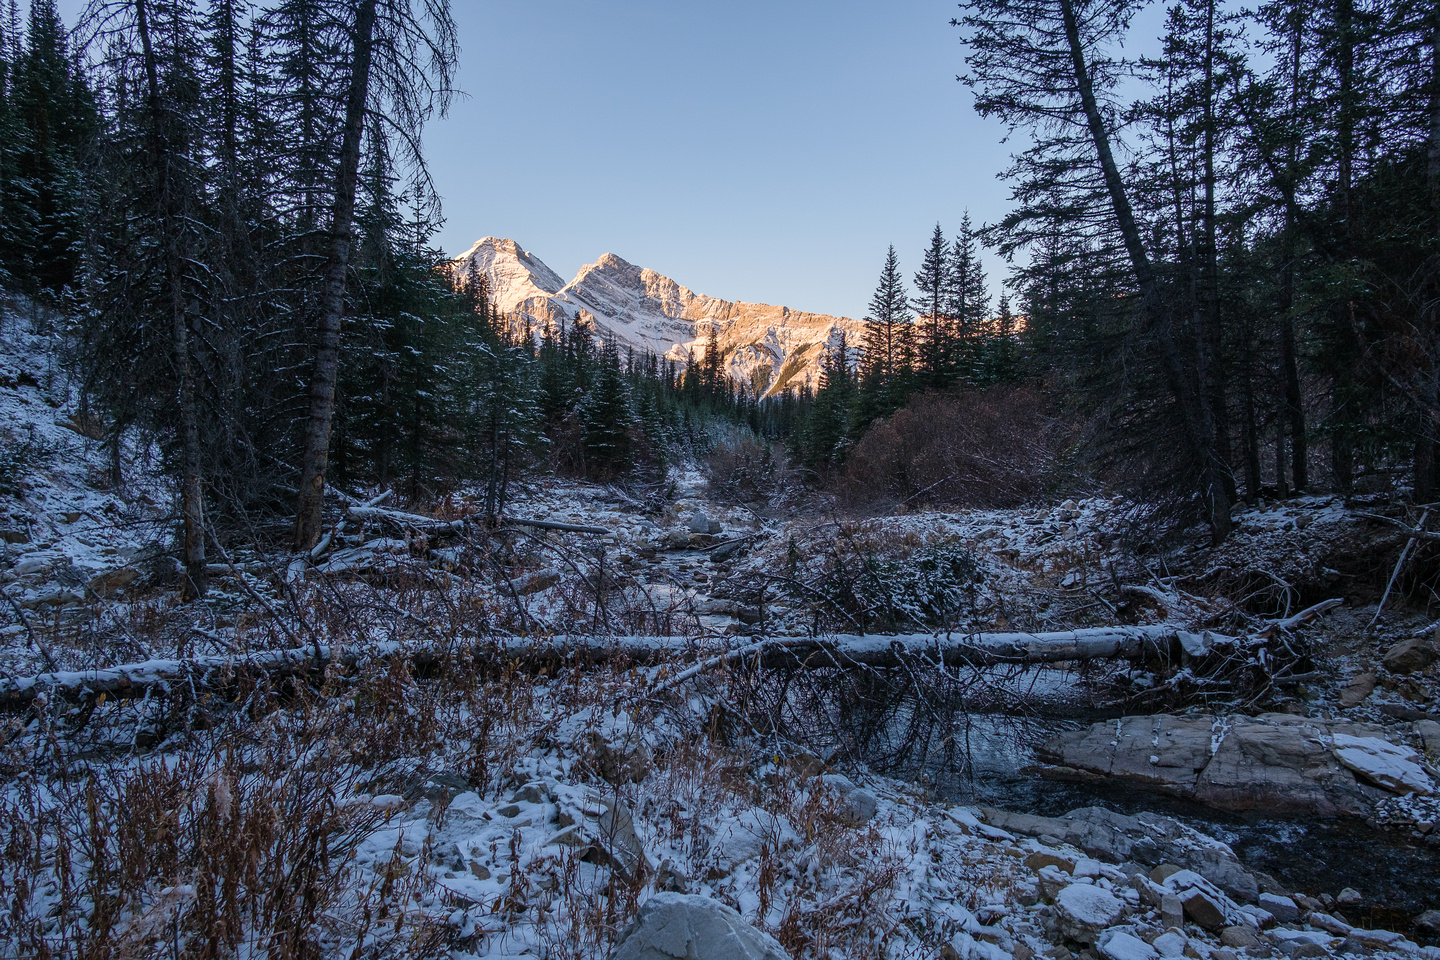 A cold, snowy hike up the Headwall Lakes trail.